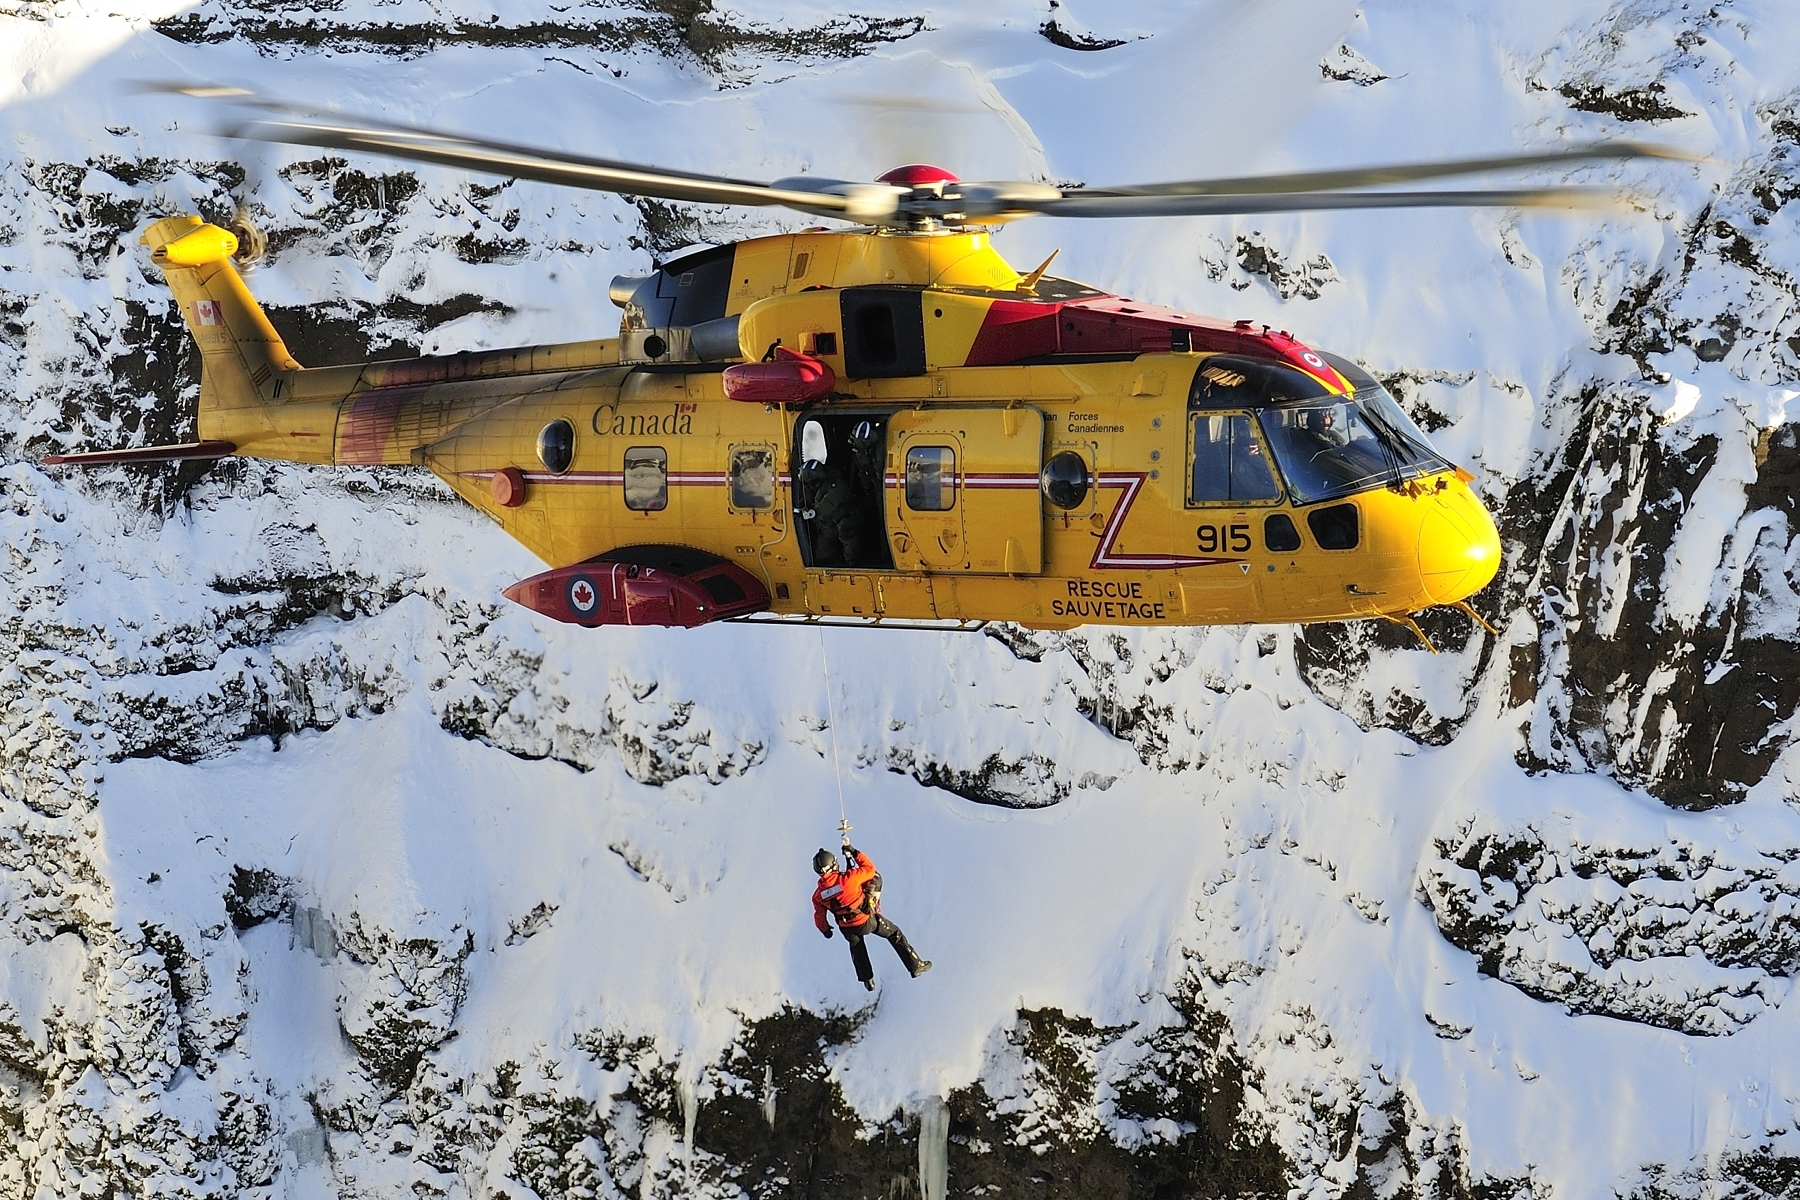 Sergeant Kevin O'Donnell, a search and rescue technician from 103 Search and Rescue Squadron, based in Gander, Newfoundland and Labrador, is hoisted down from a CH-149 Cormorant helicopter to participate in a mountain rescue scenario during a search and rescue exercise held in Iceland on February 10, 2016. PHOTO: Master Corporal Johanie Maheu